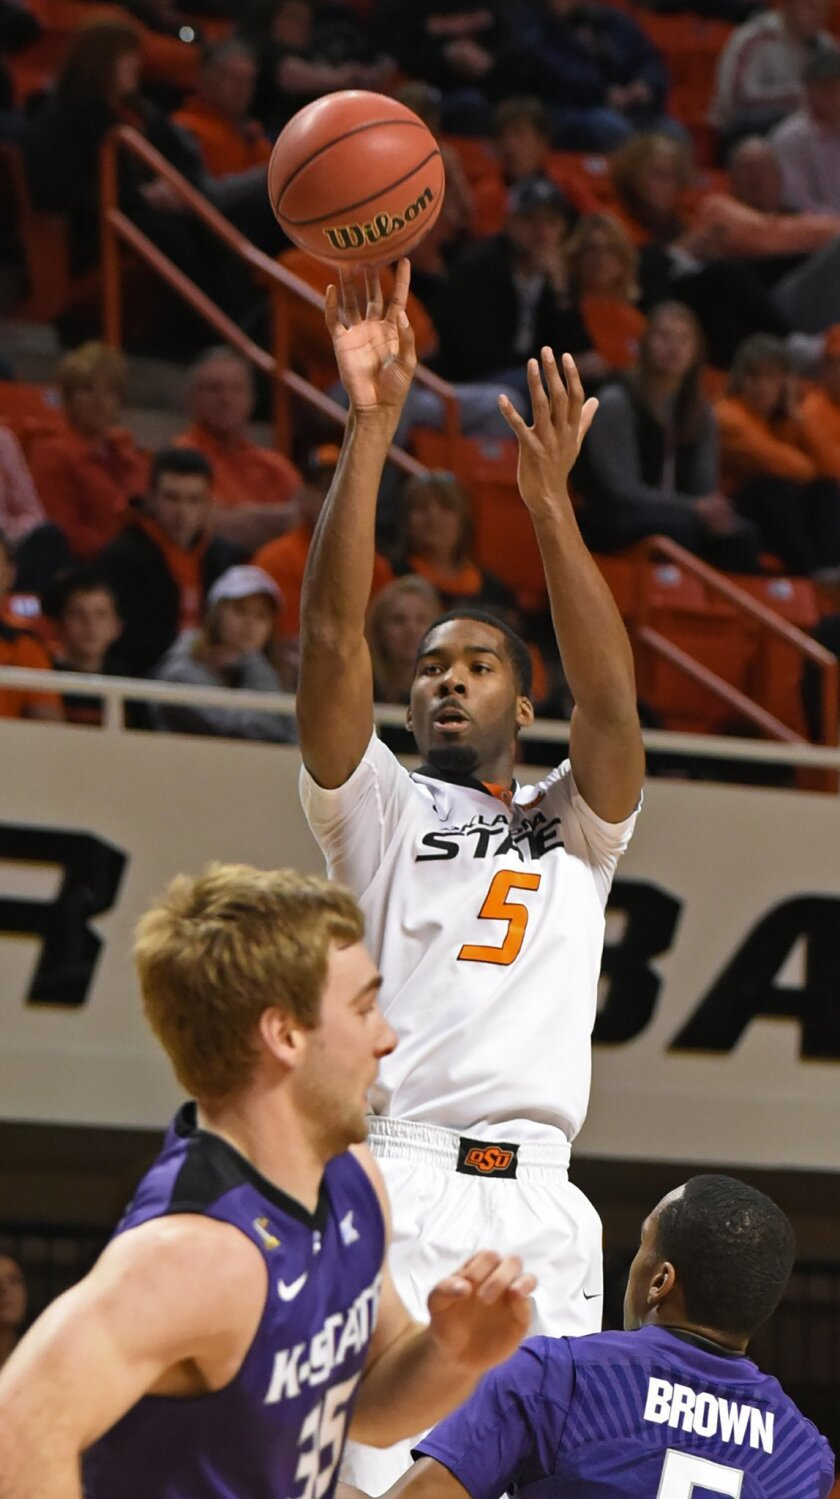 Oklahoma State guard Tavarius Shine, center, shoots over Kansas State forward Austin Budke, left, and guard Barry Brown in the first half of an NCAA college basketball game in Stillwater, Okla., Saturday, Feb. 13, 2016. Shine scored 11 points in their 58-55 win. (AP Photo/Brody Schmidt)